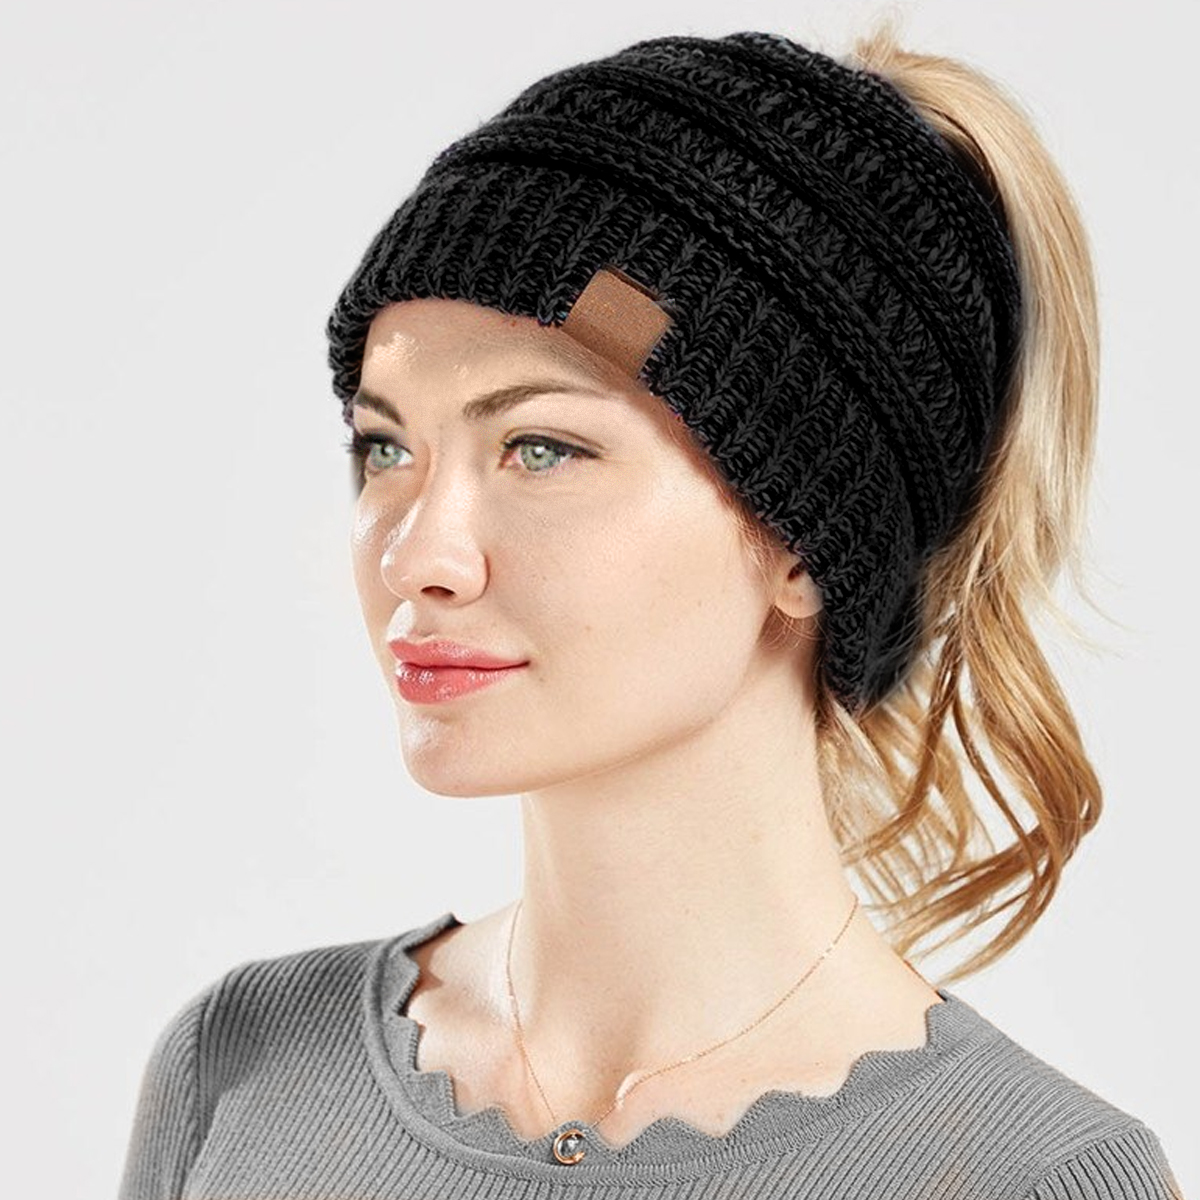 IAG-Girls-Ponytail-Beanie-Lifestyle-2-SKU102122-1200×1200